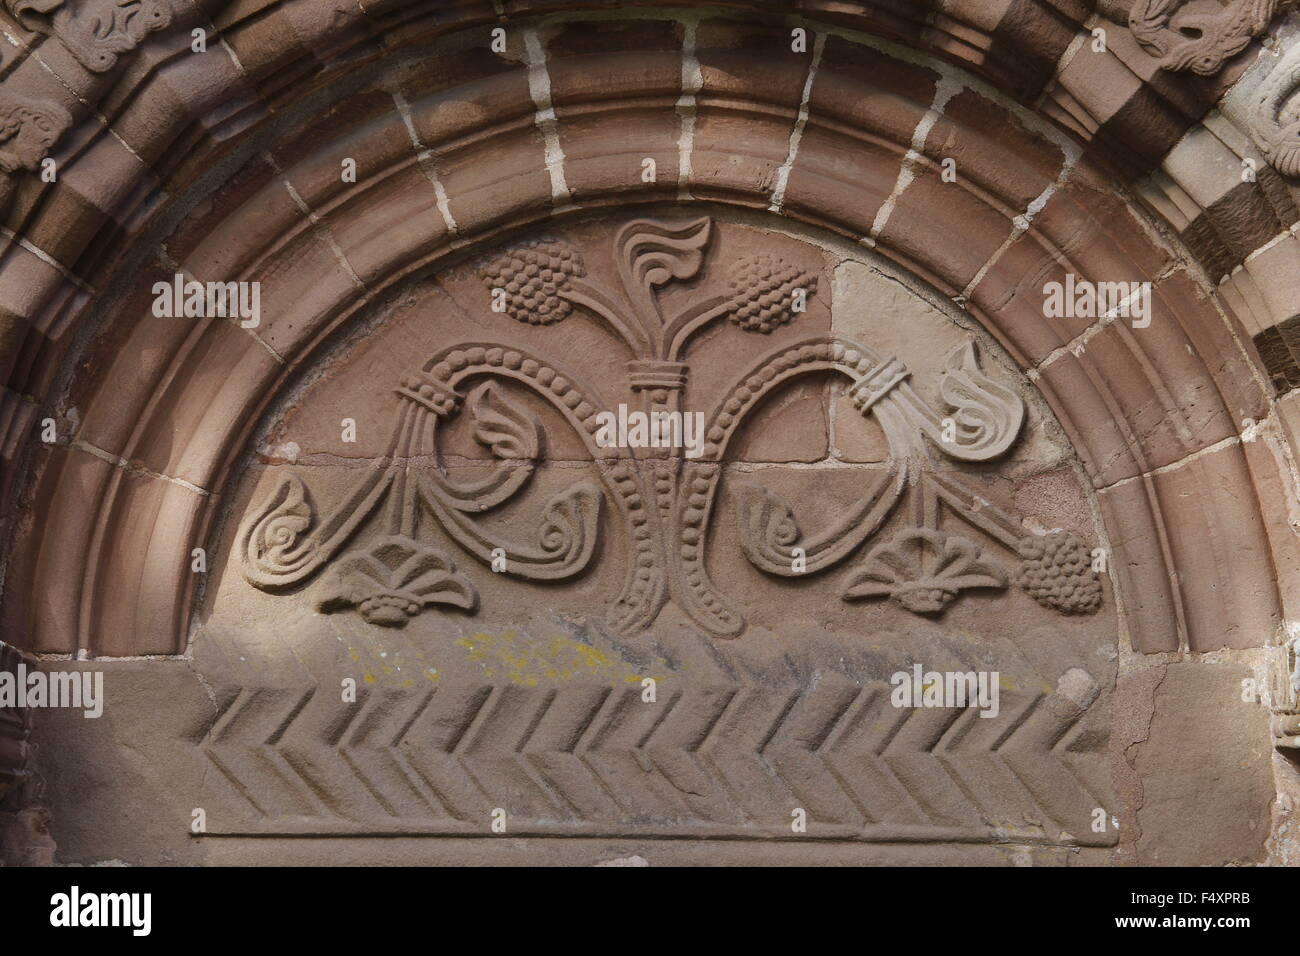 Tree of Life Tympanum, South Door, Kilpeck Church, Herefordshire, England - Stock Image